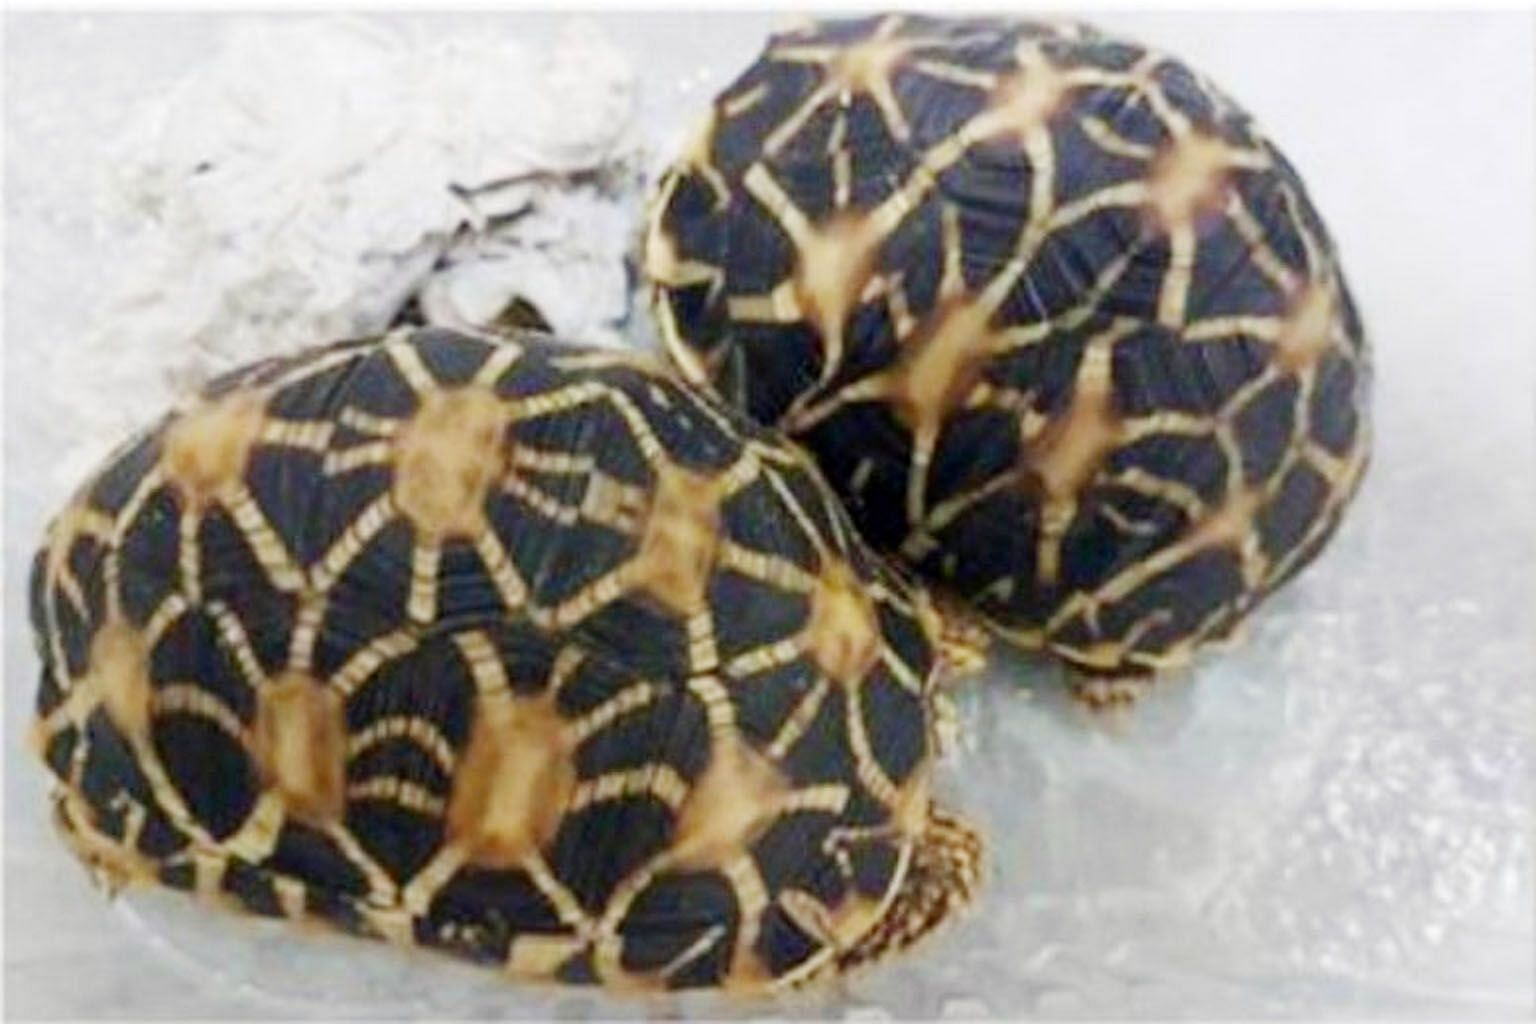 The two Indian star tortoises (above) and hedgehog that were seized by the authorities in a sting operation.